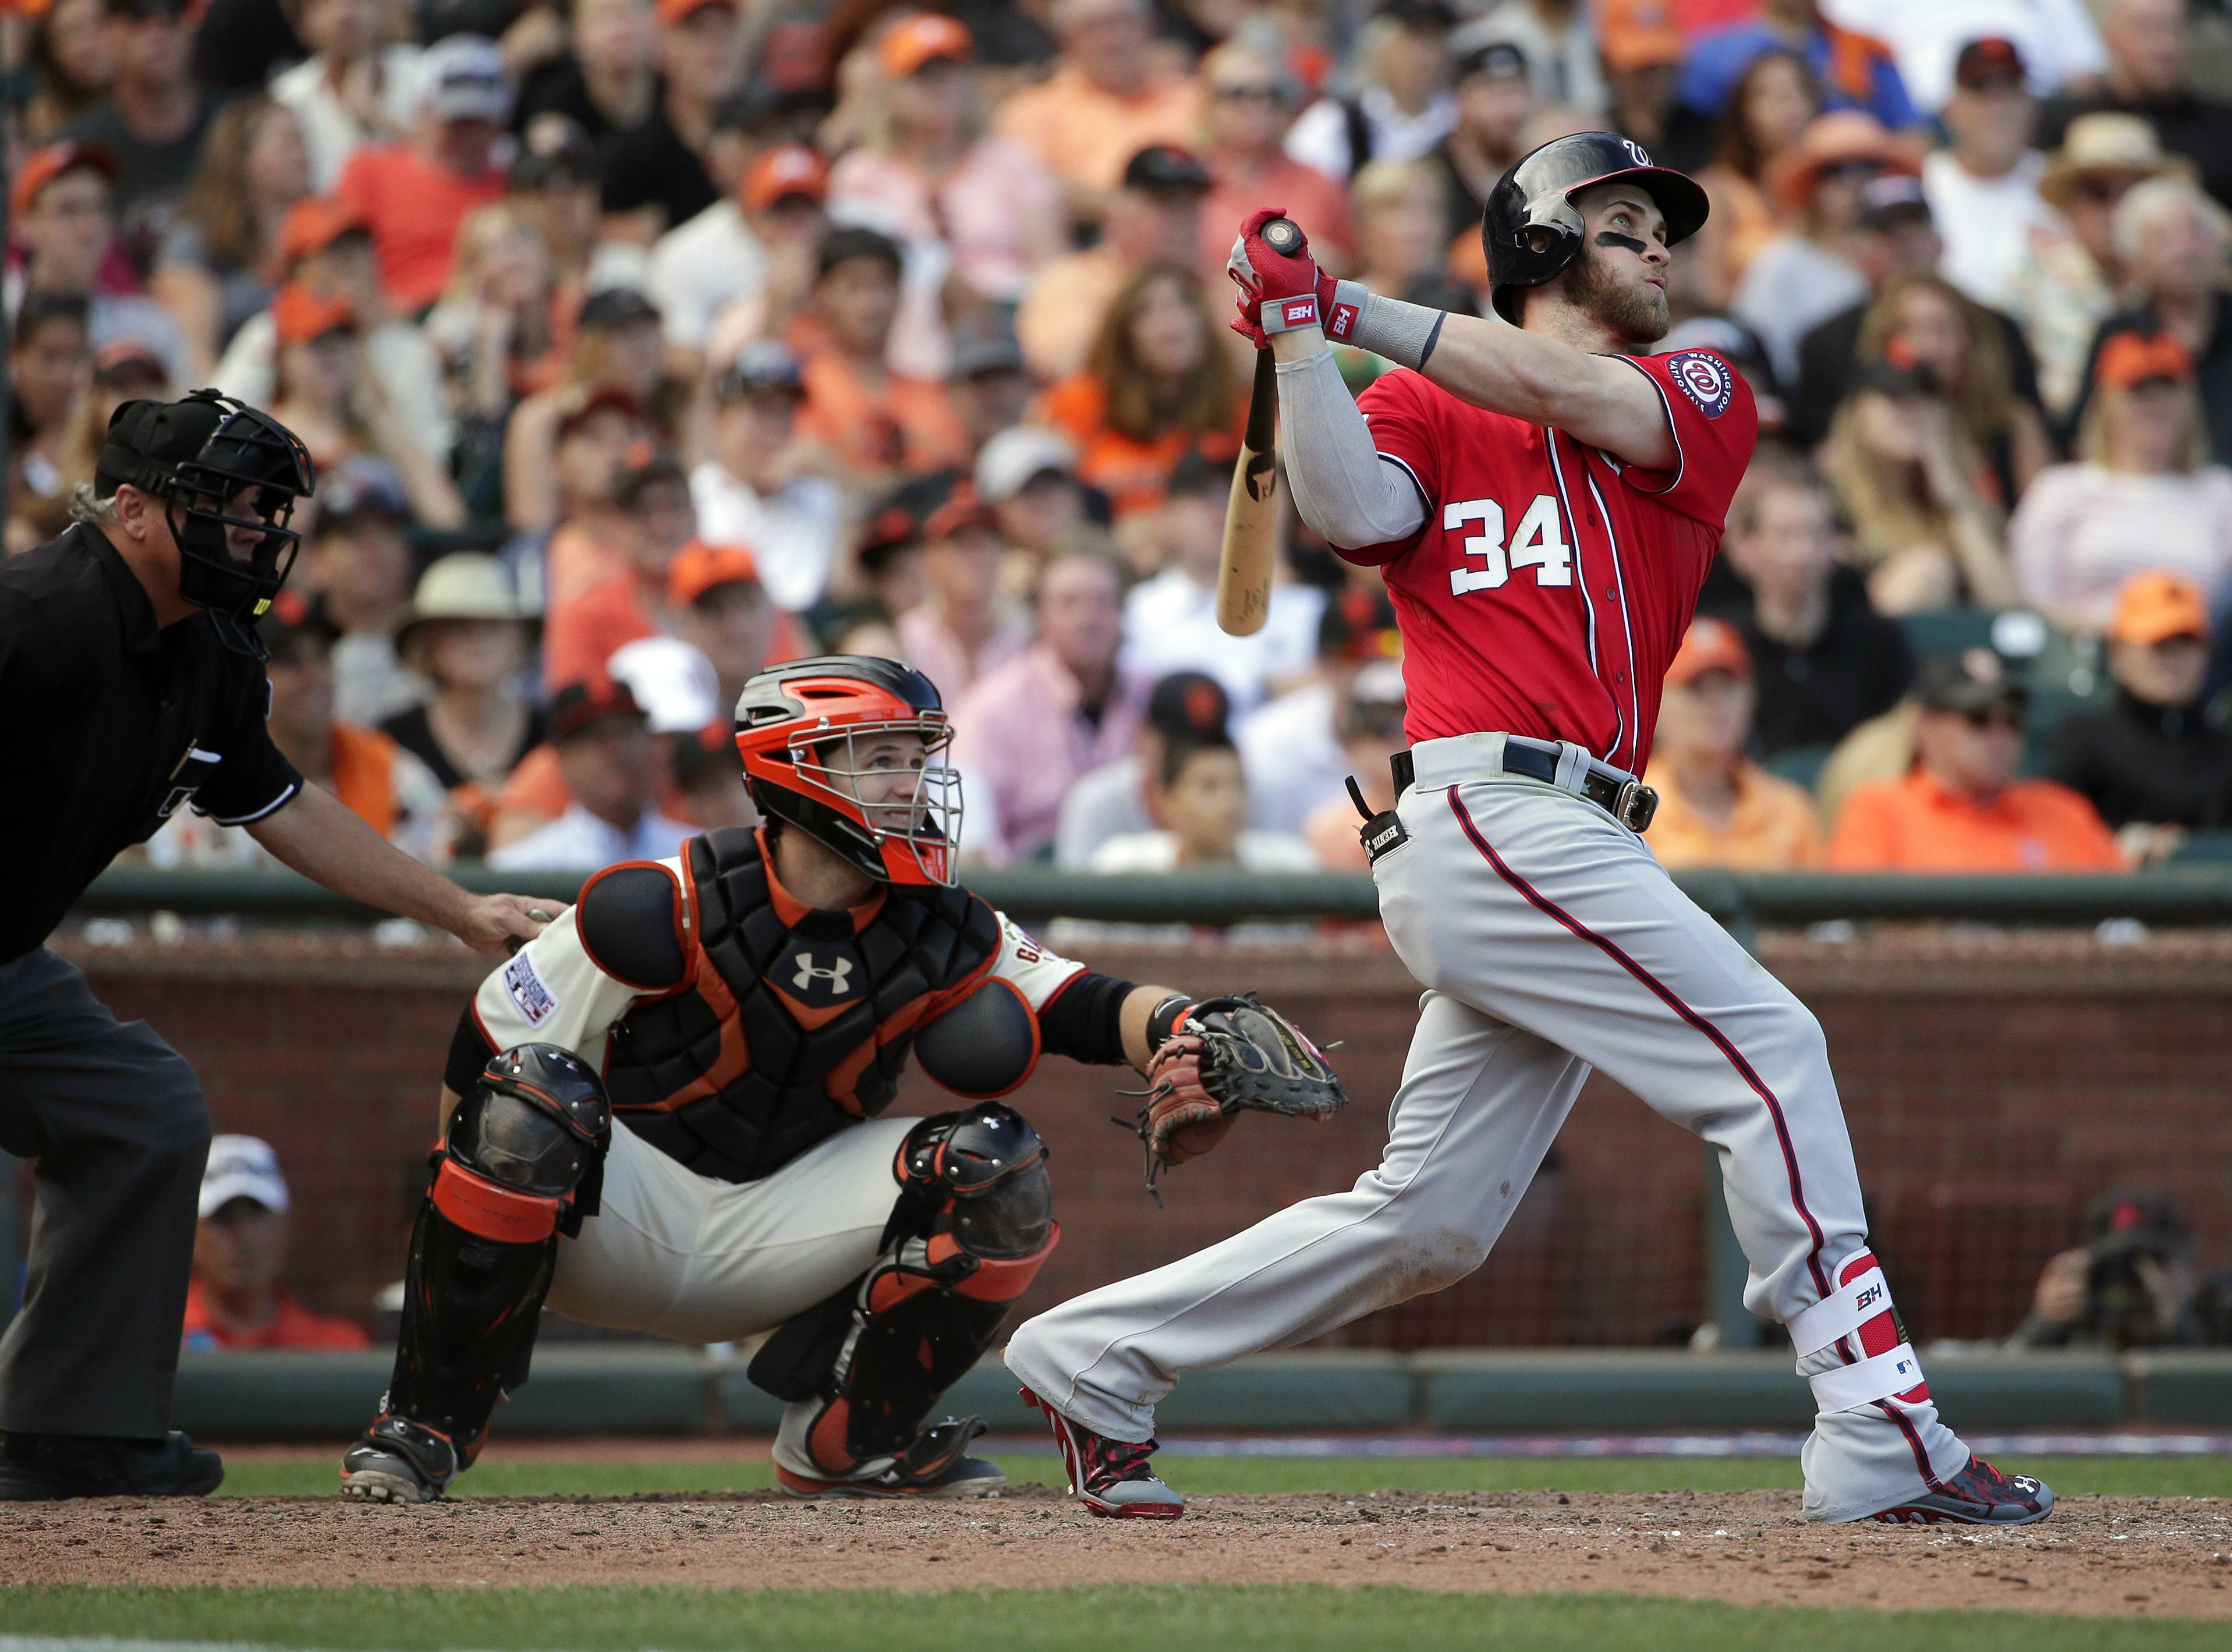 Image result for 2014 nlds game 3 harper home run